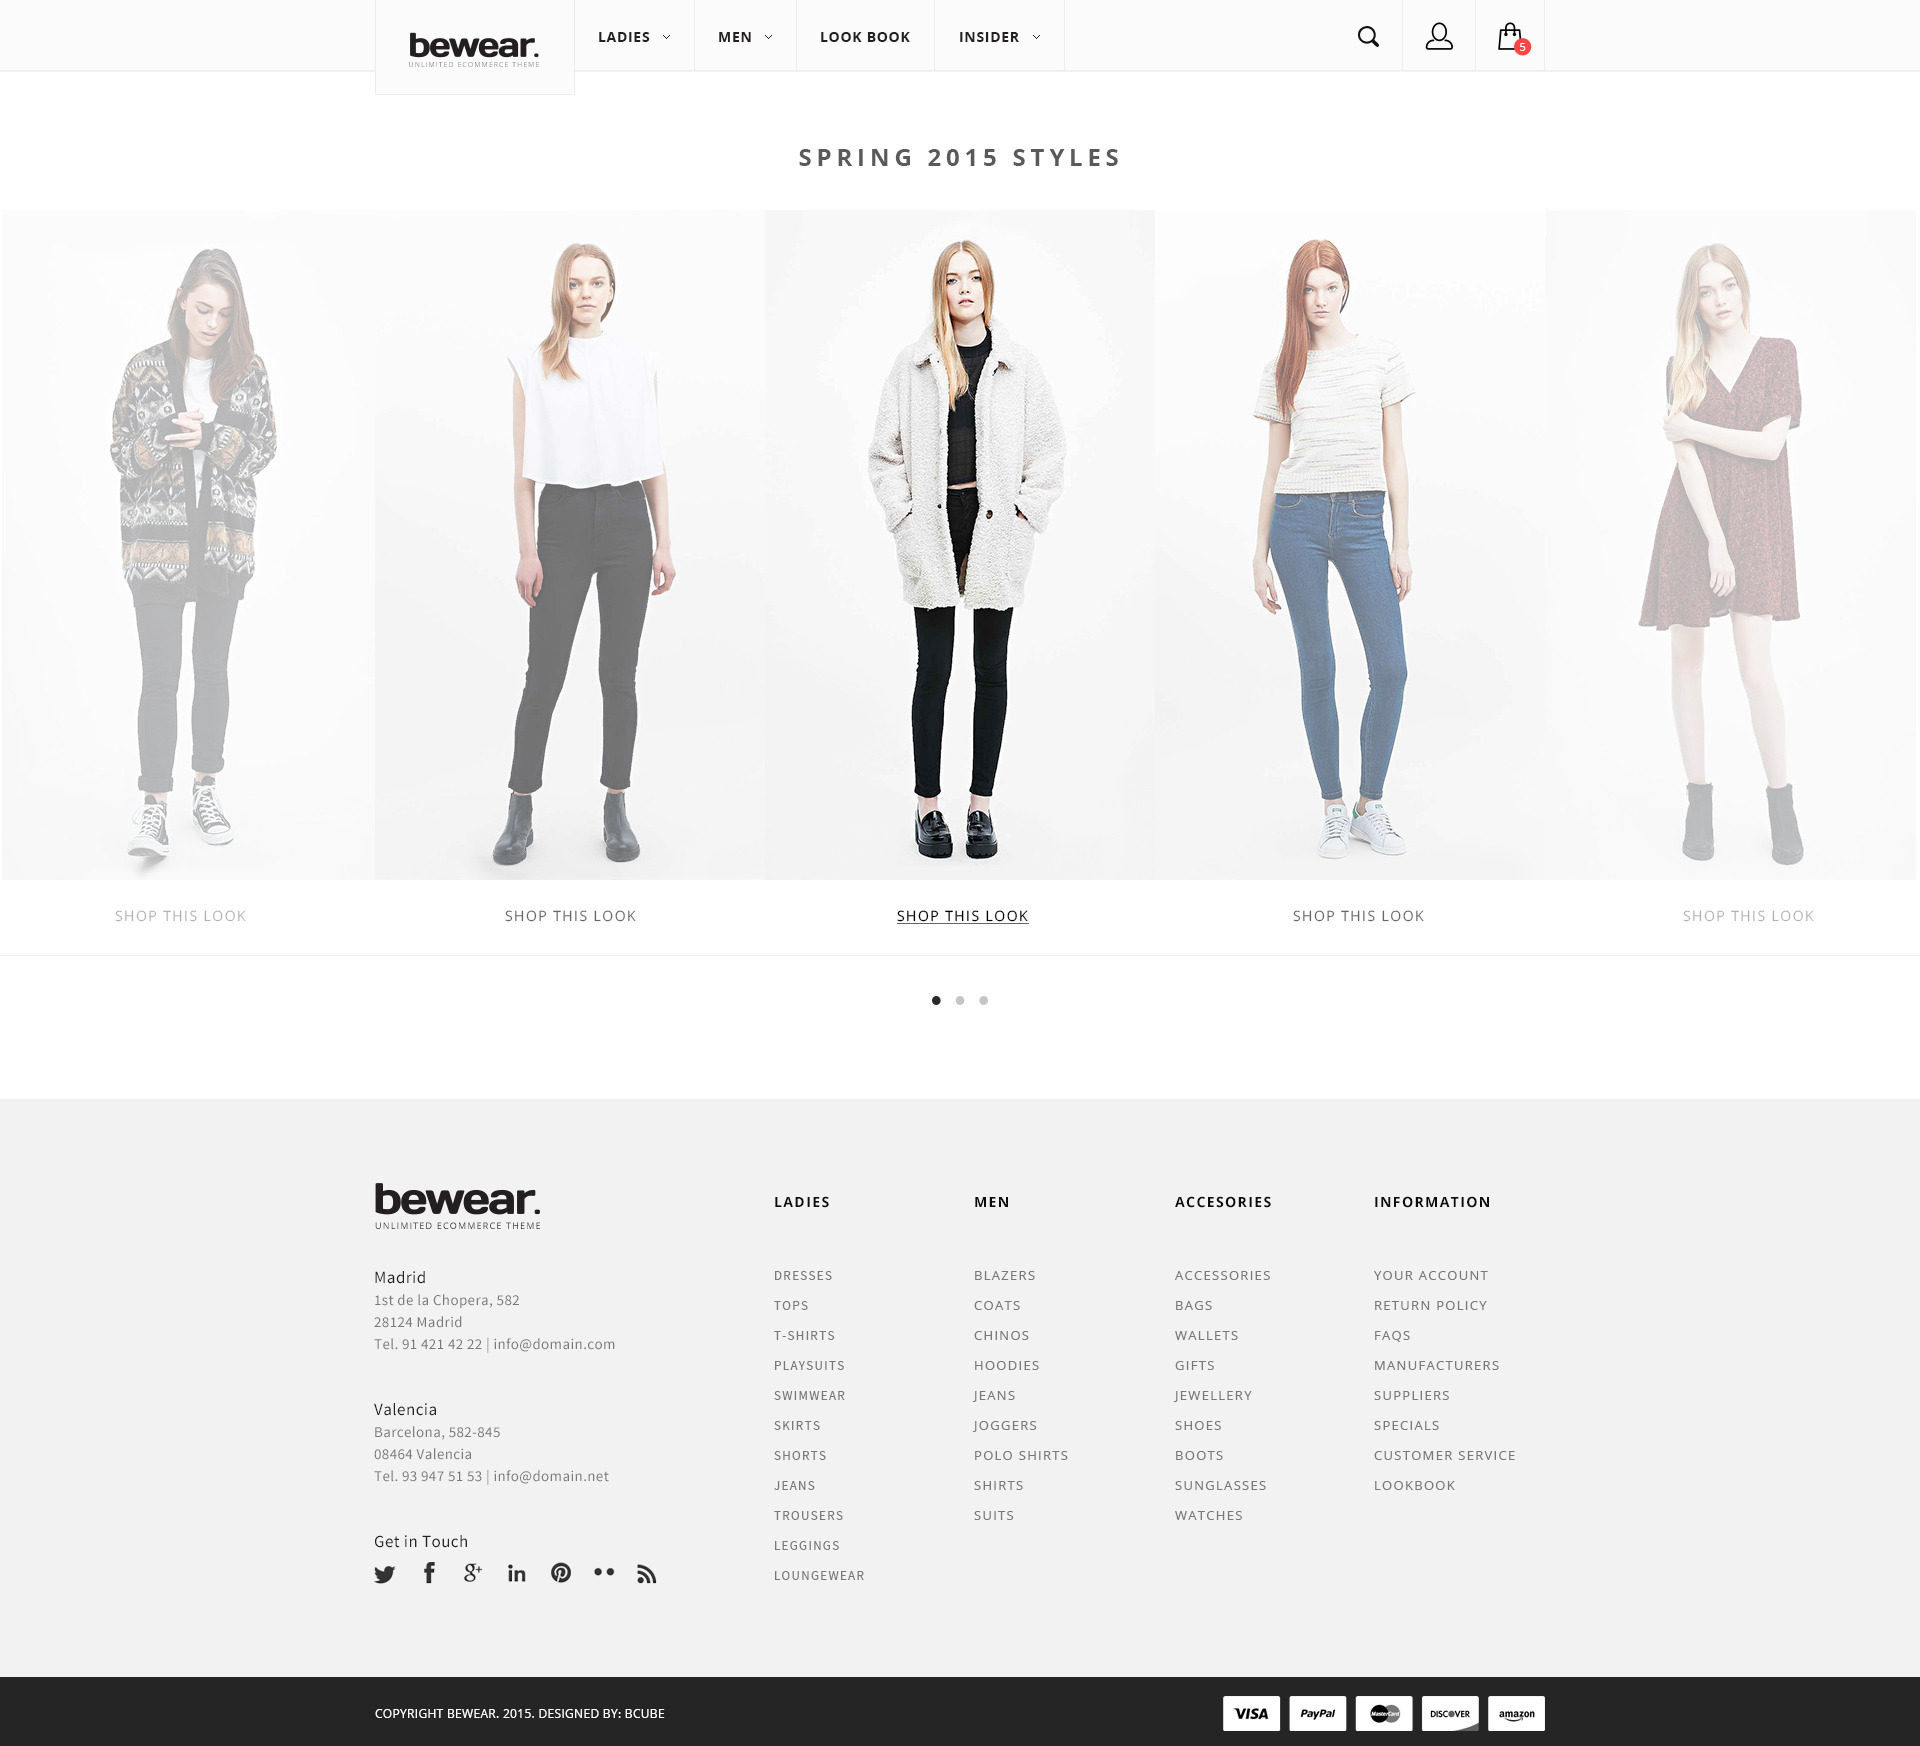 Bewear - Lookbook Style eCommerce PSD Template by bcube | ThemeForest